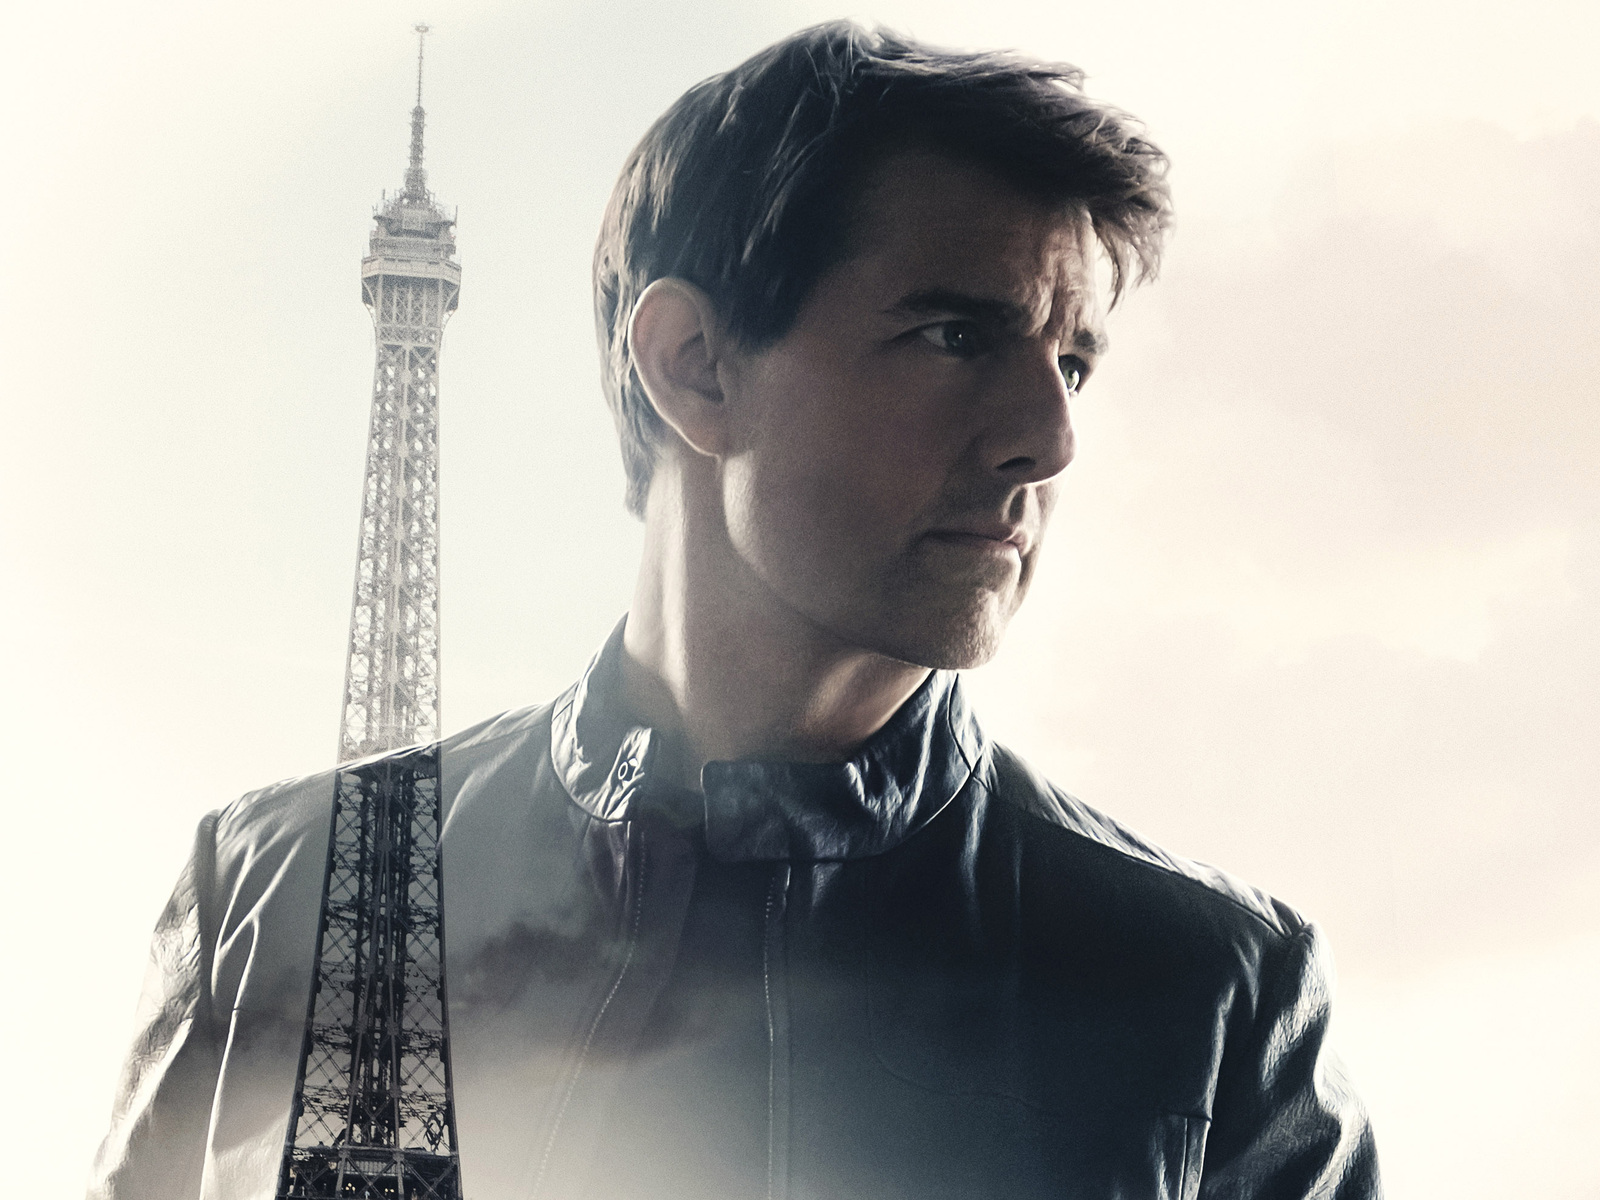 1600x1200 Tom Cruise Mission Impossible Fallout 4k 1600x1200 Resolution Hd 4k Wallpapers Images Backgrounds Photos And Pictures